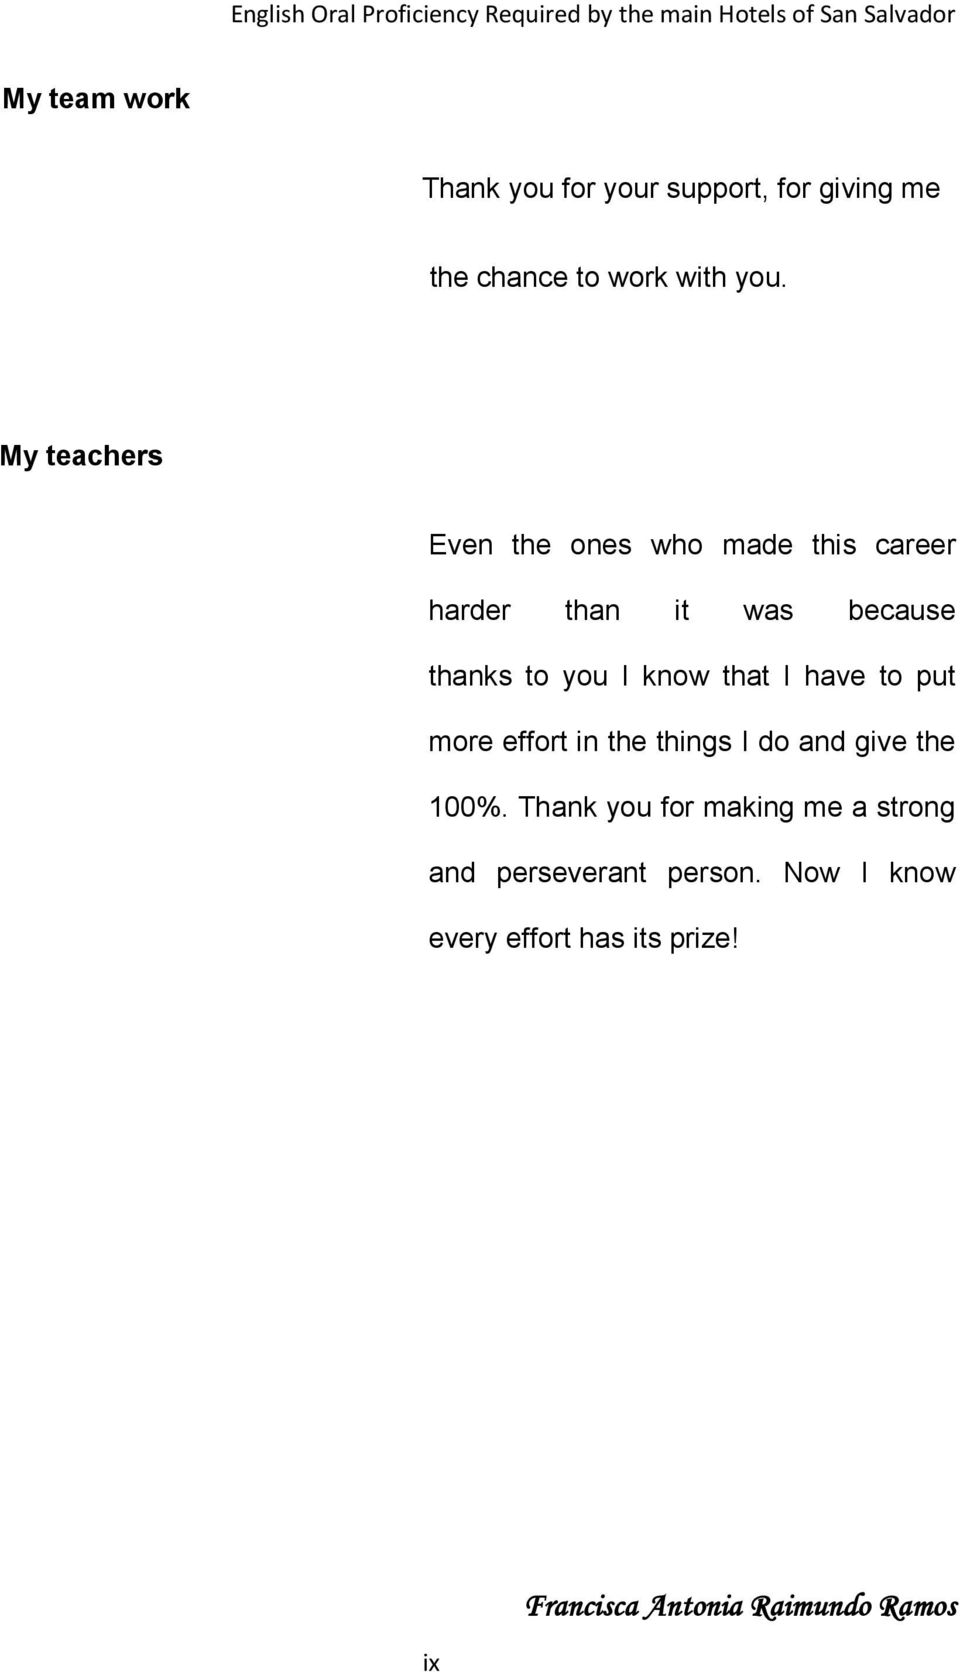 My teachers Even the ones who made this career harder than it was because thanks to you I know that I have to